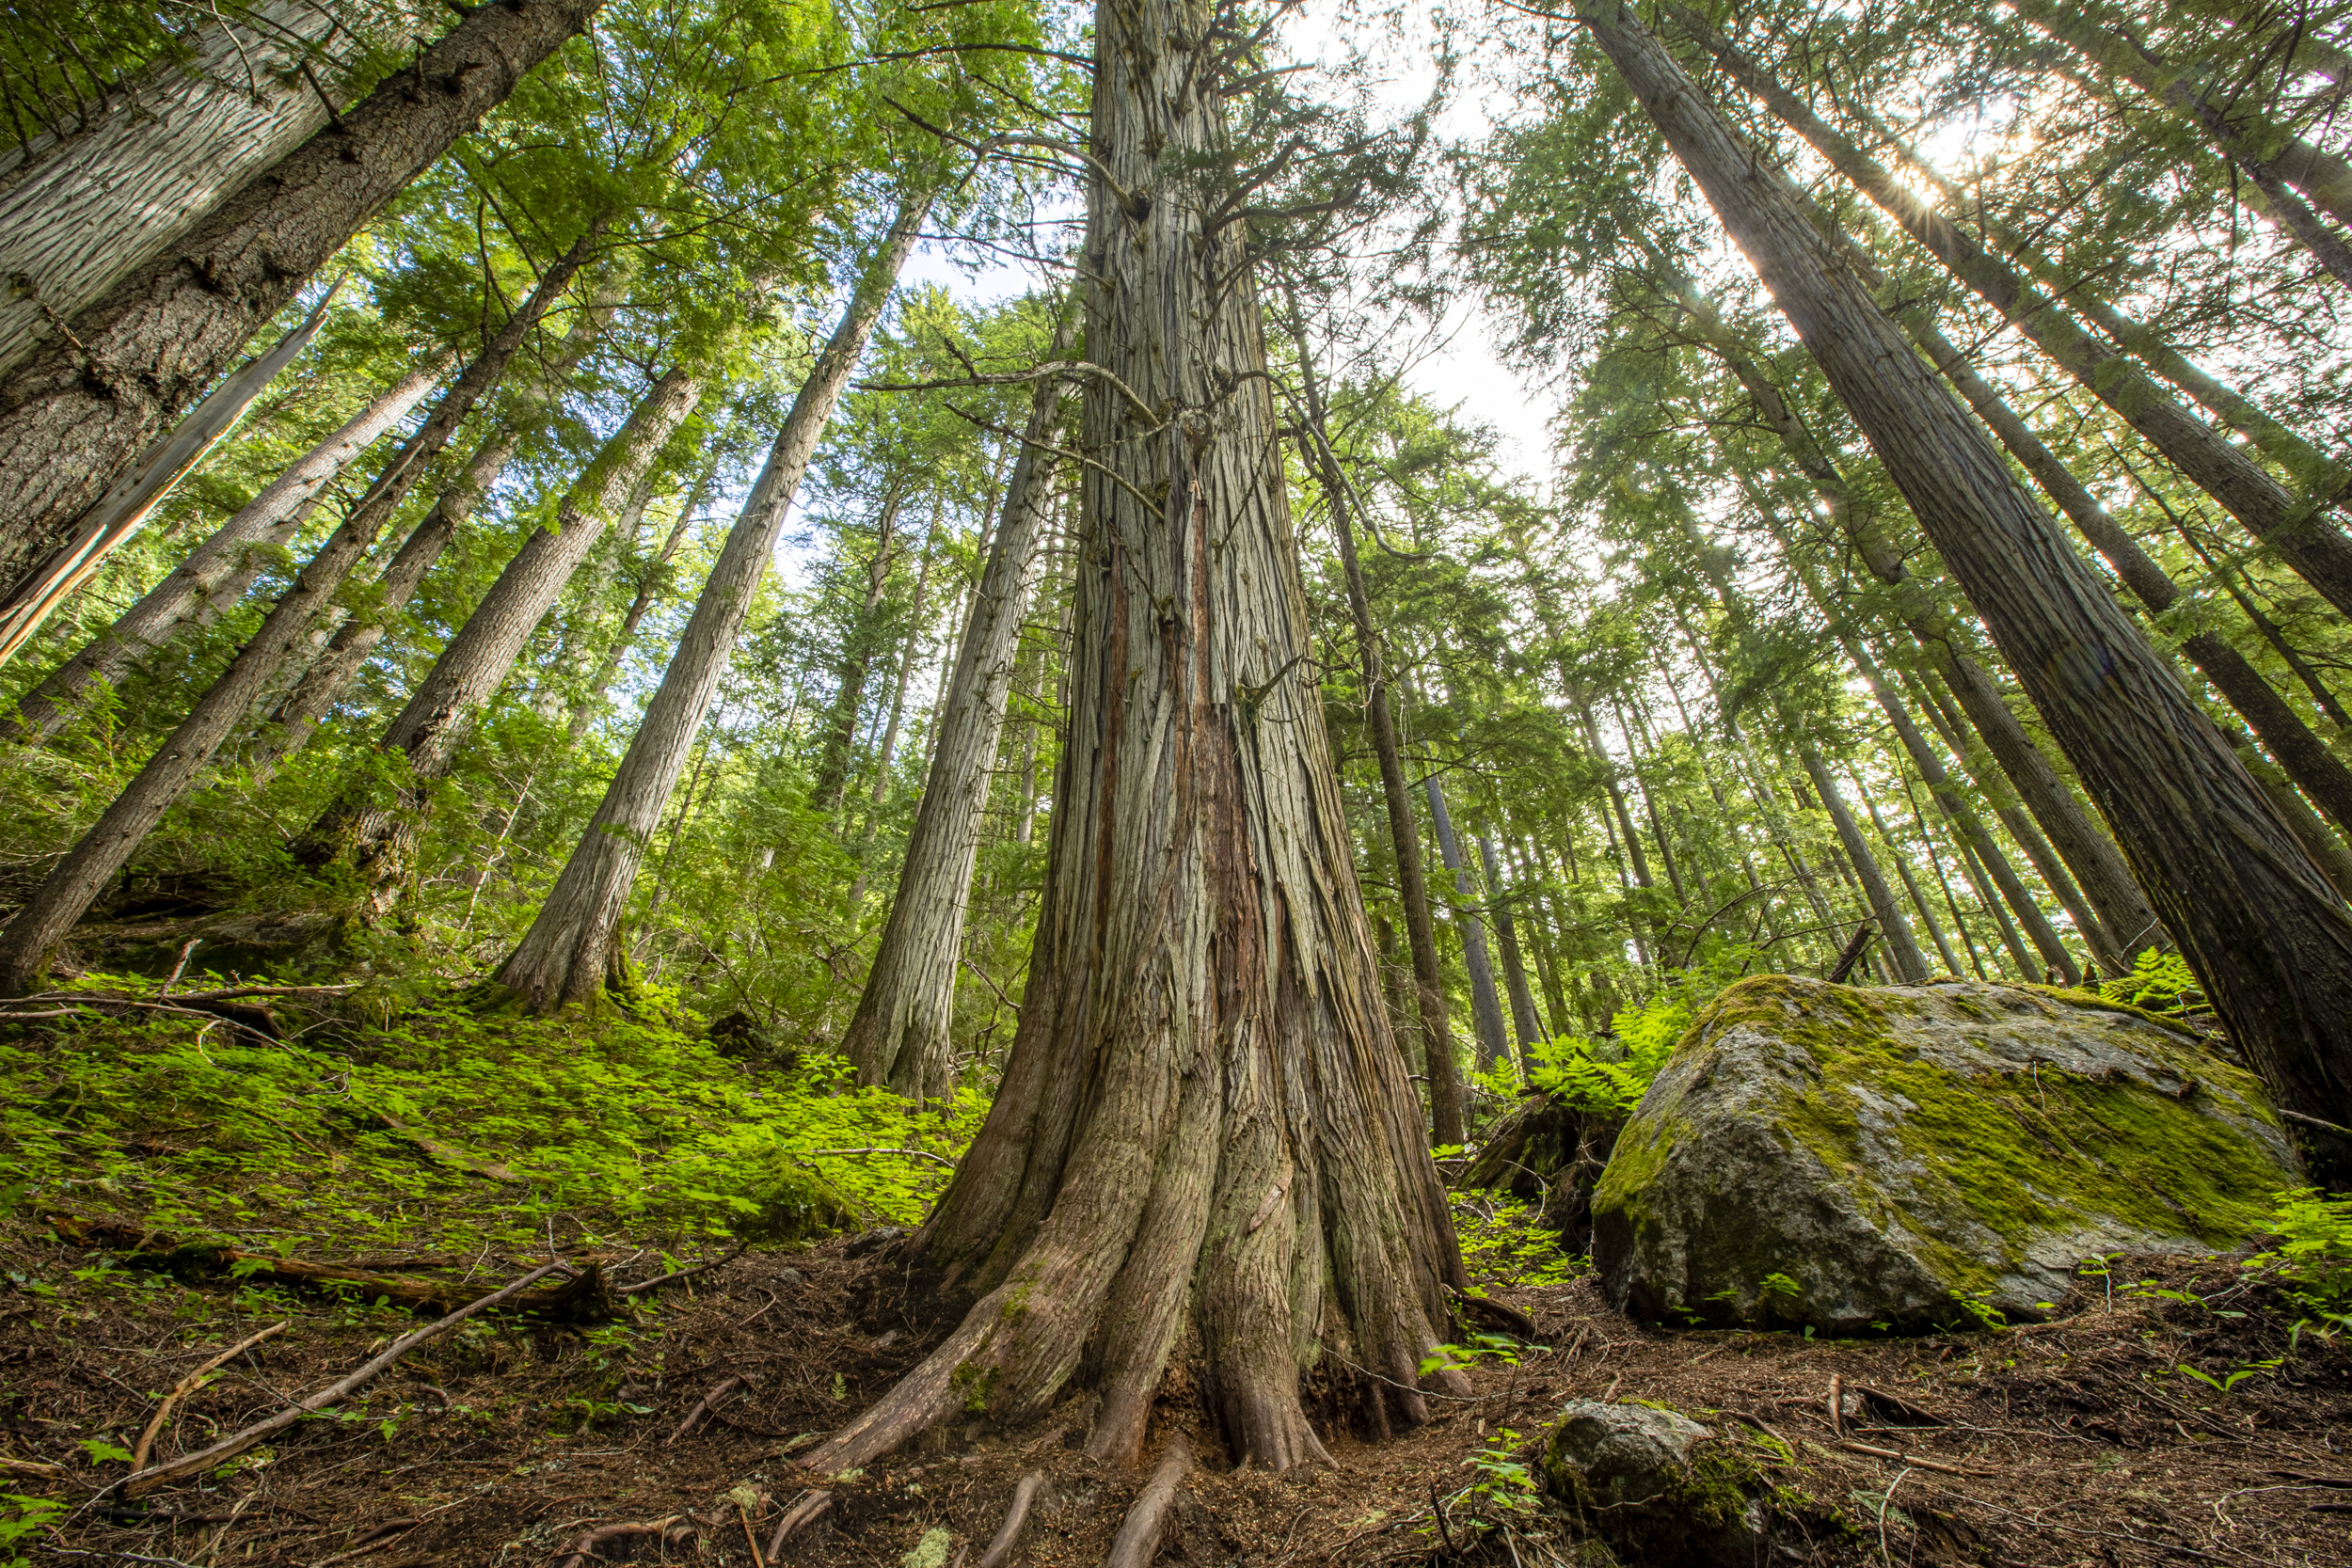 A large western red cedar dwarfs its neighbors in a stand of ancient trees in British Columbia's Selkirk Mountains.